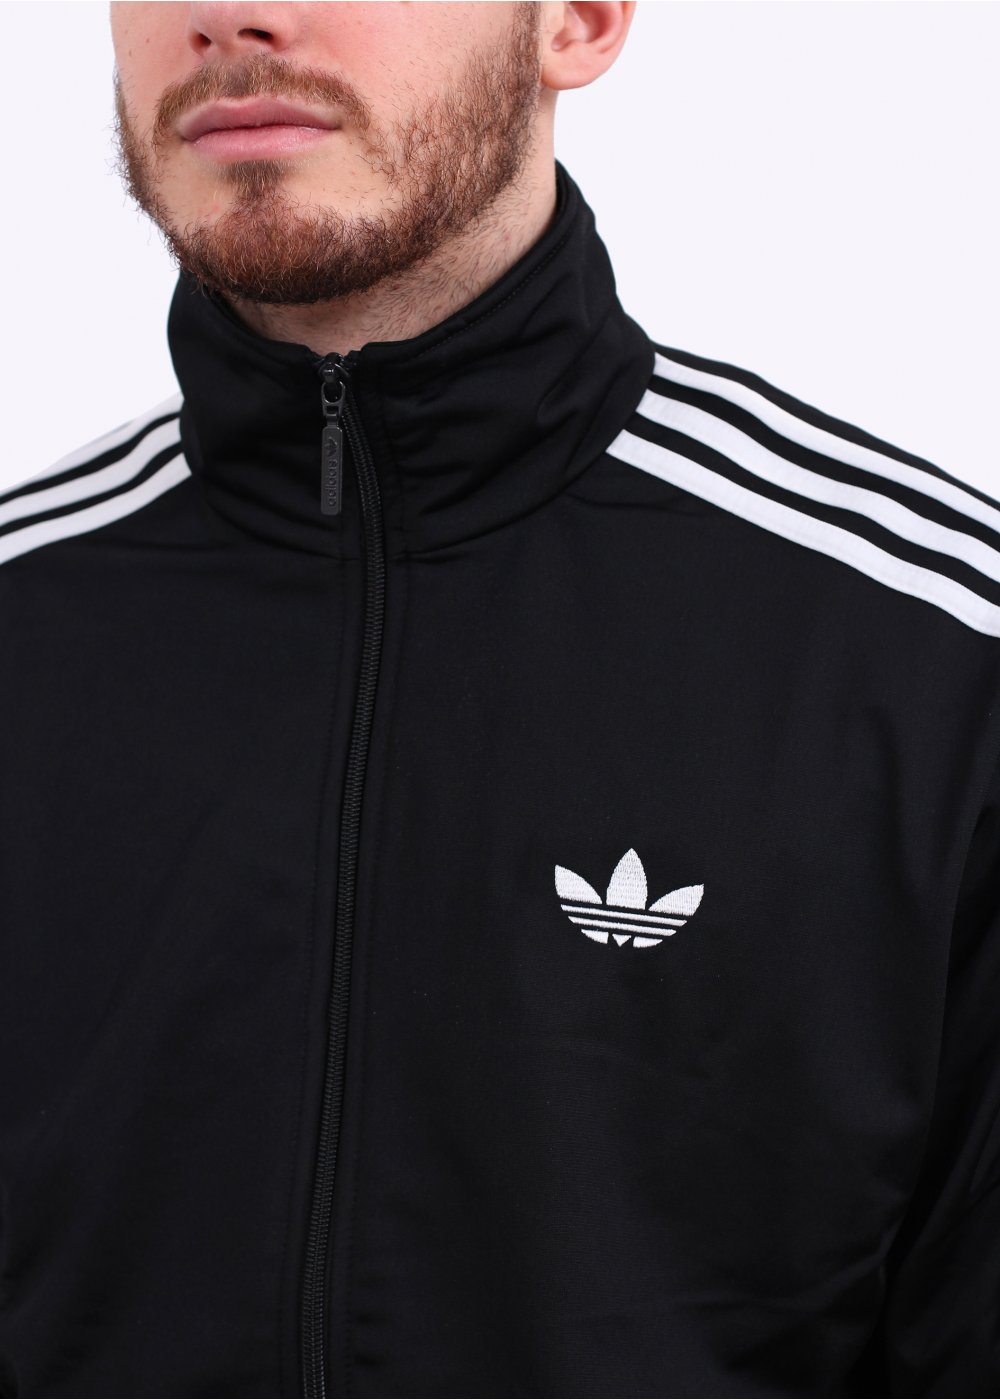 Adidas Originals Adi Firebird Track Top Black